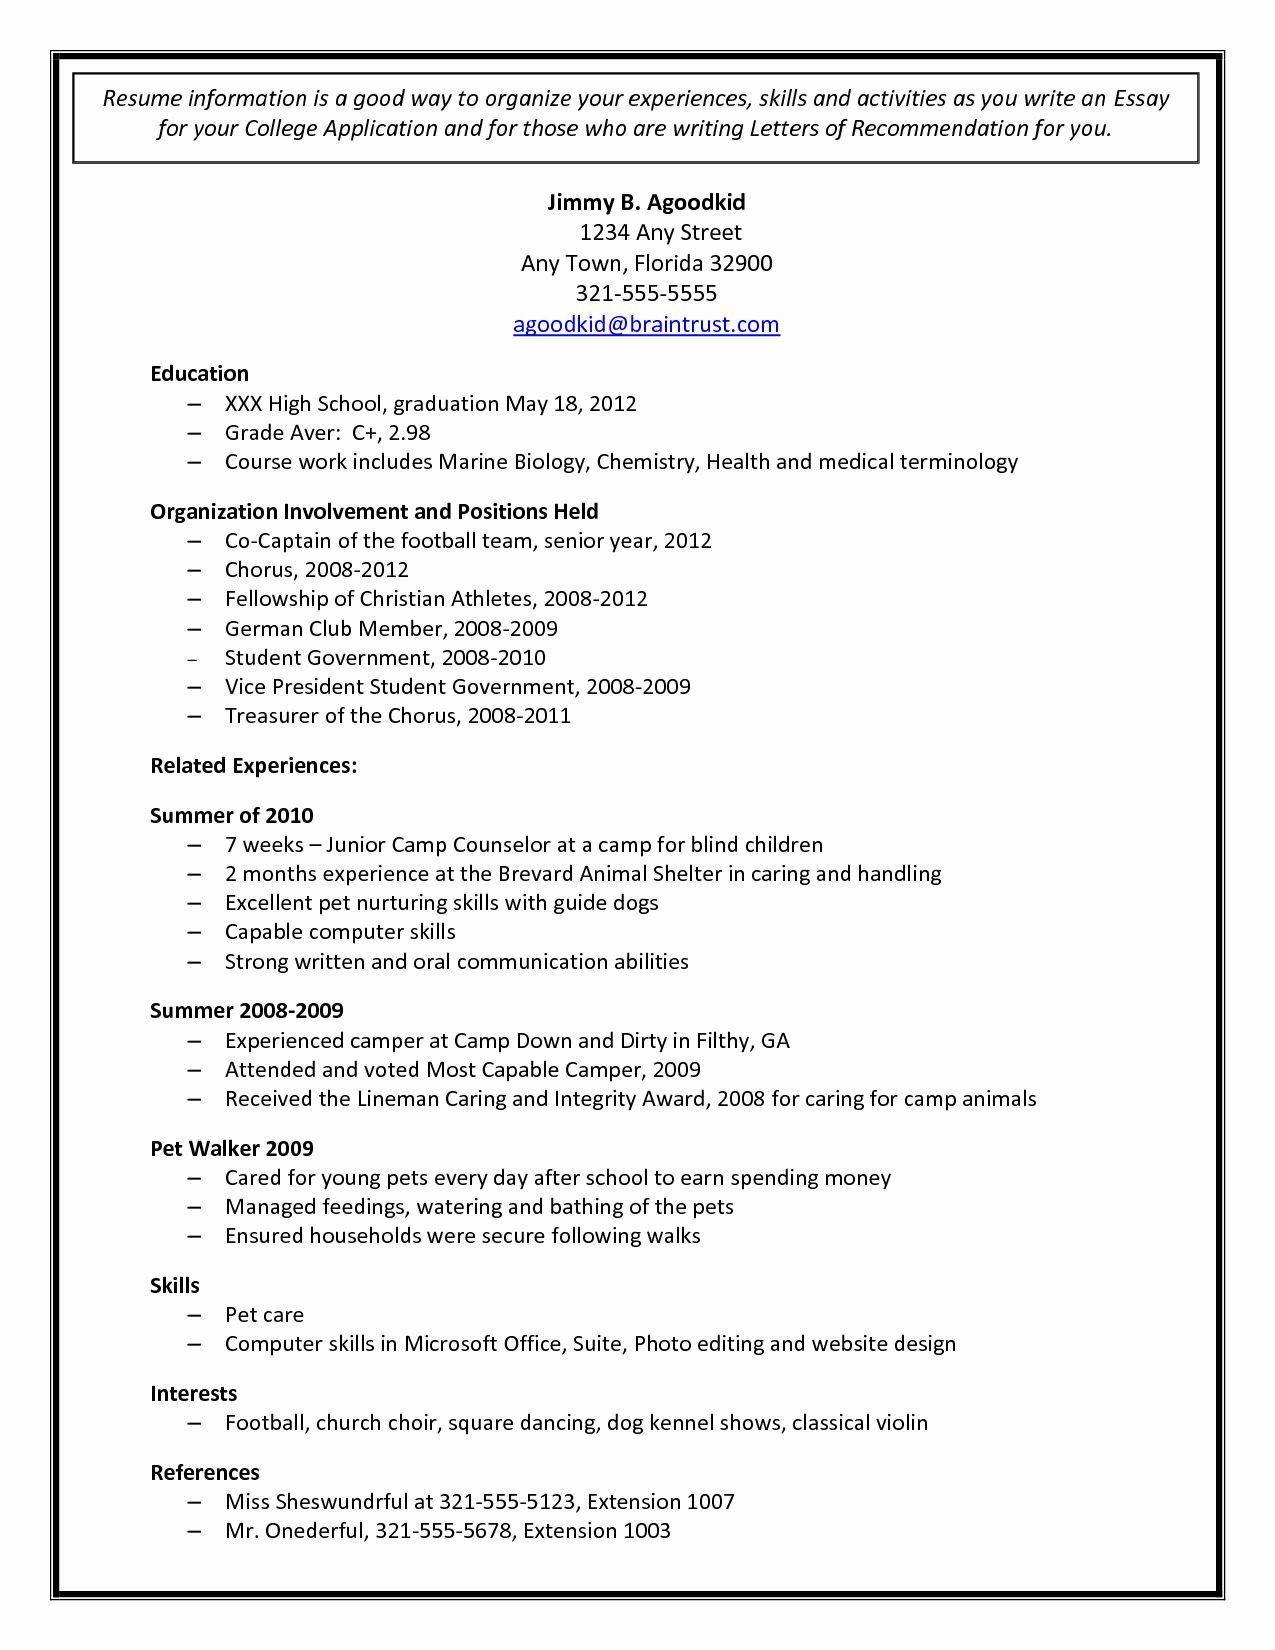 000 Surprising College Admission Resume Template Sample  Application Microsoft Word Free CvFull